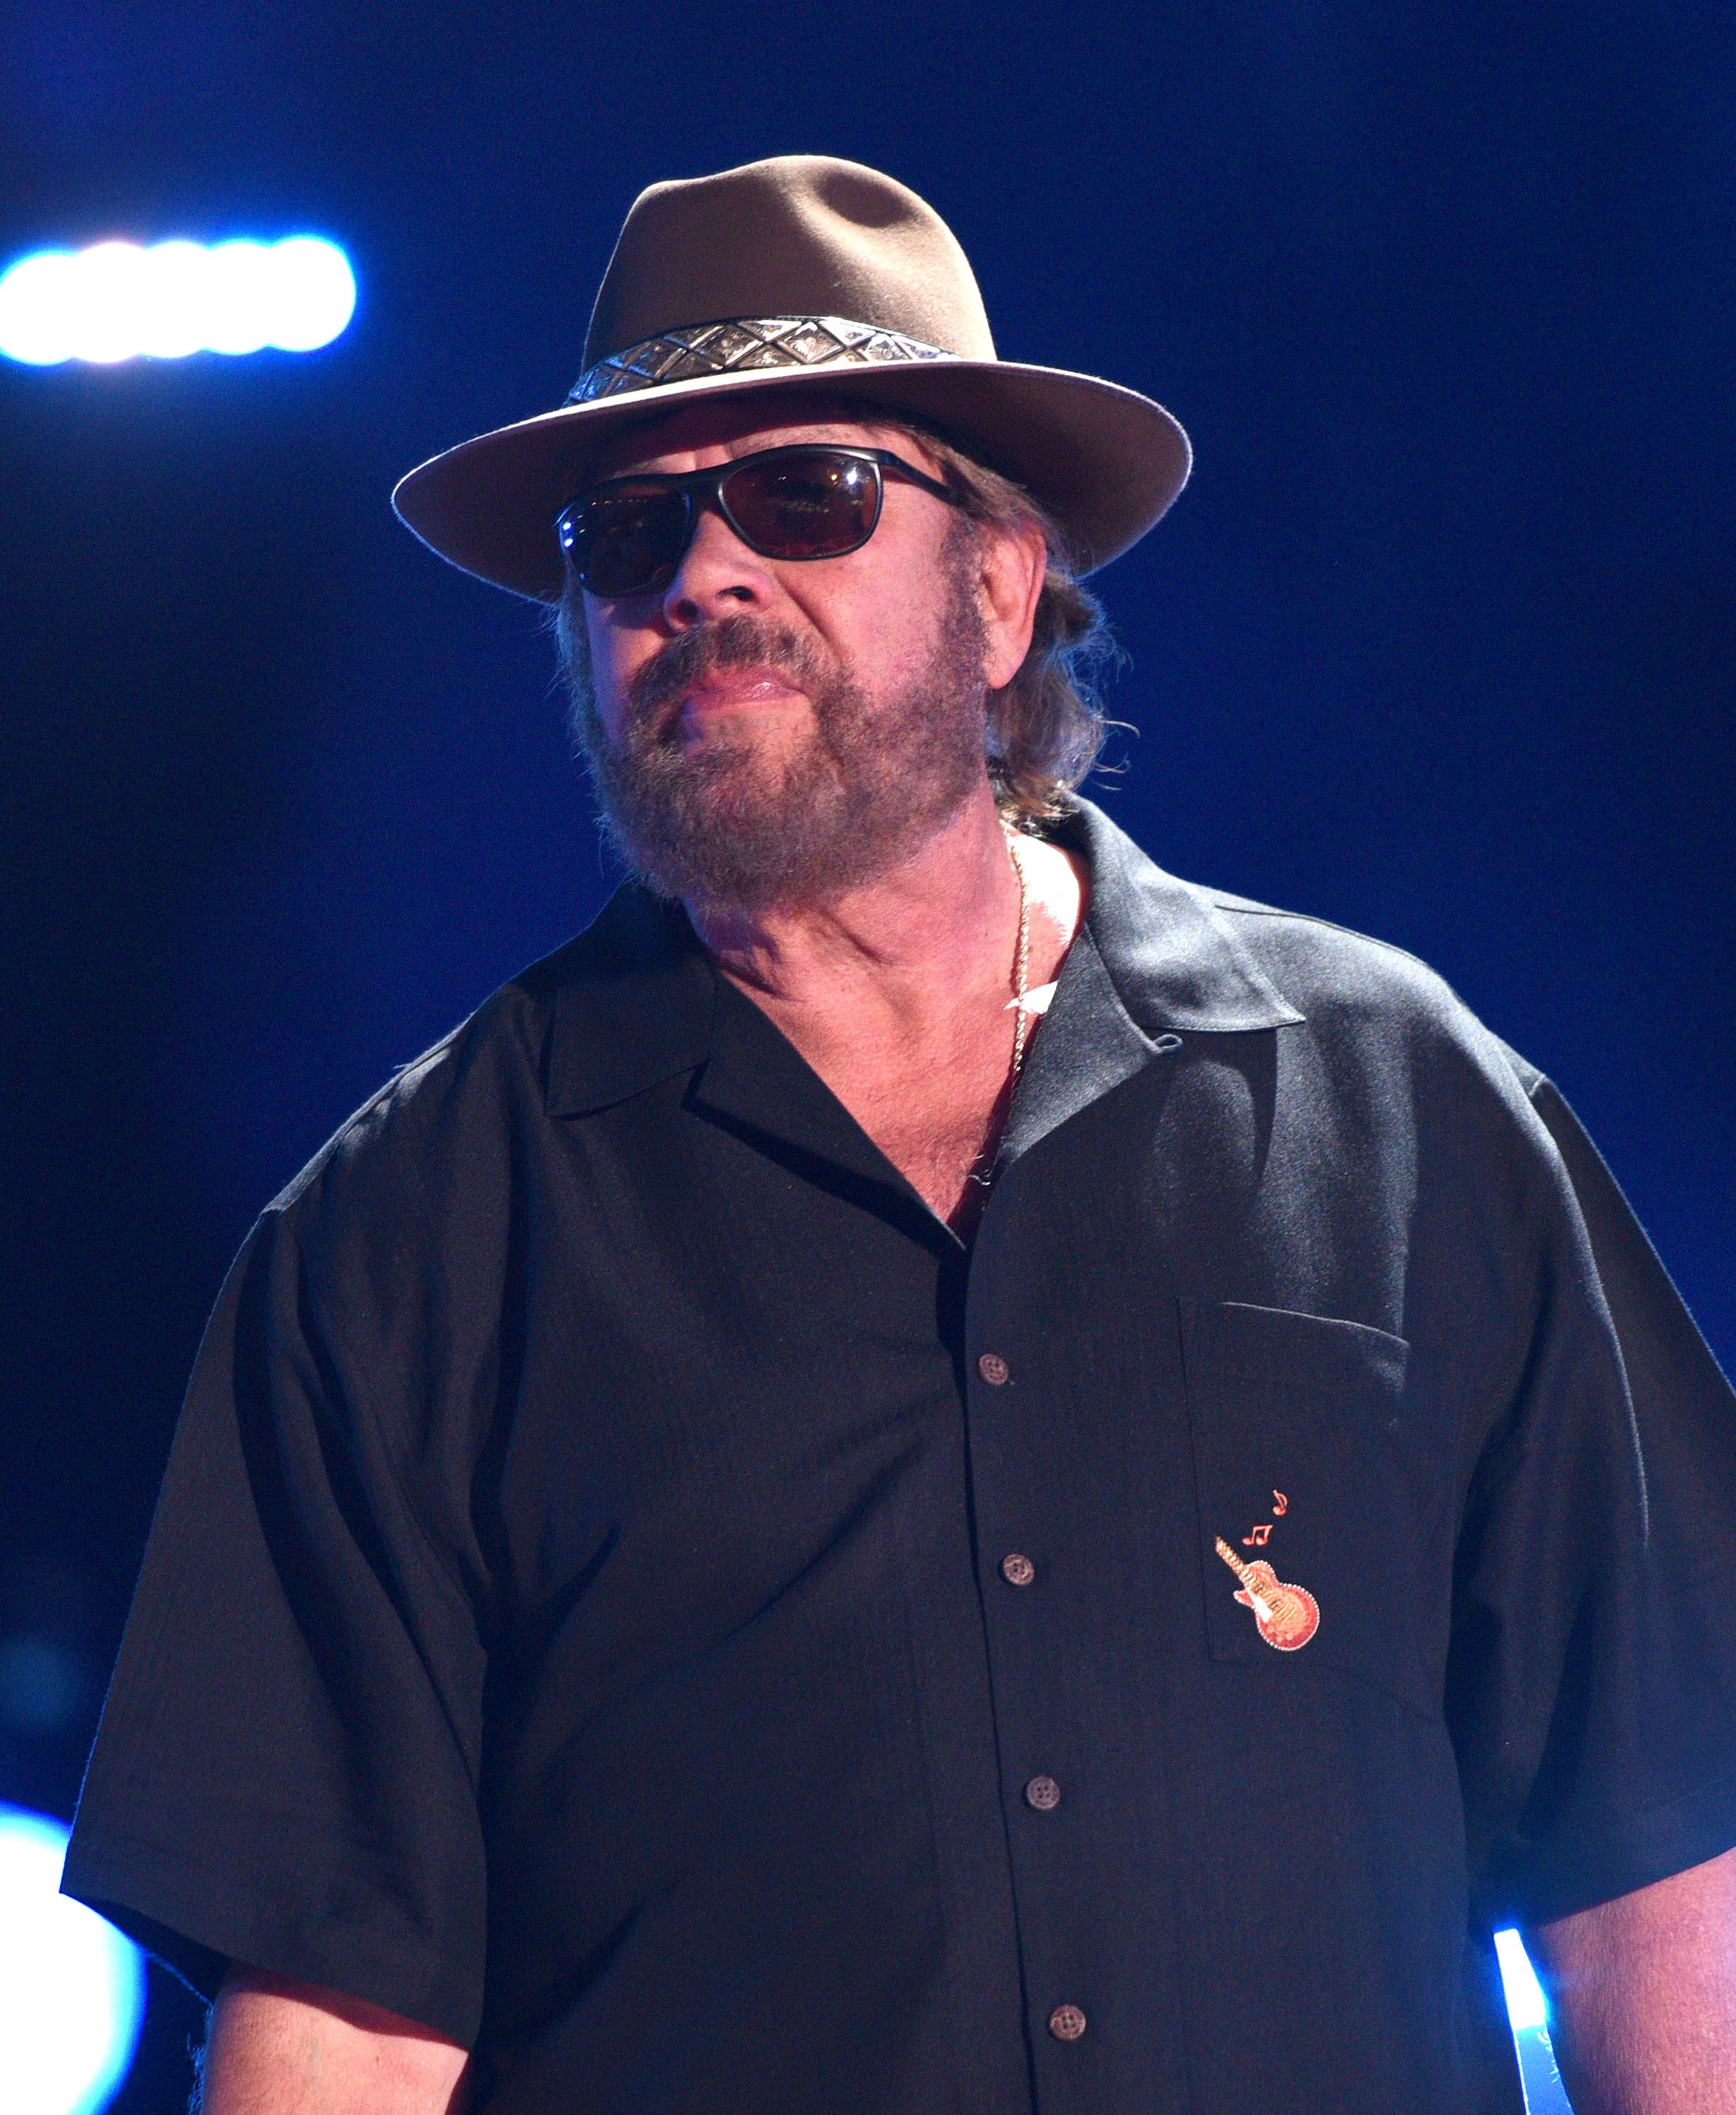 Hank Williams Jr. performs at CMA Music Festival on June 10, 2016 in Nashville, Tennessee | Photo: Getty Images